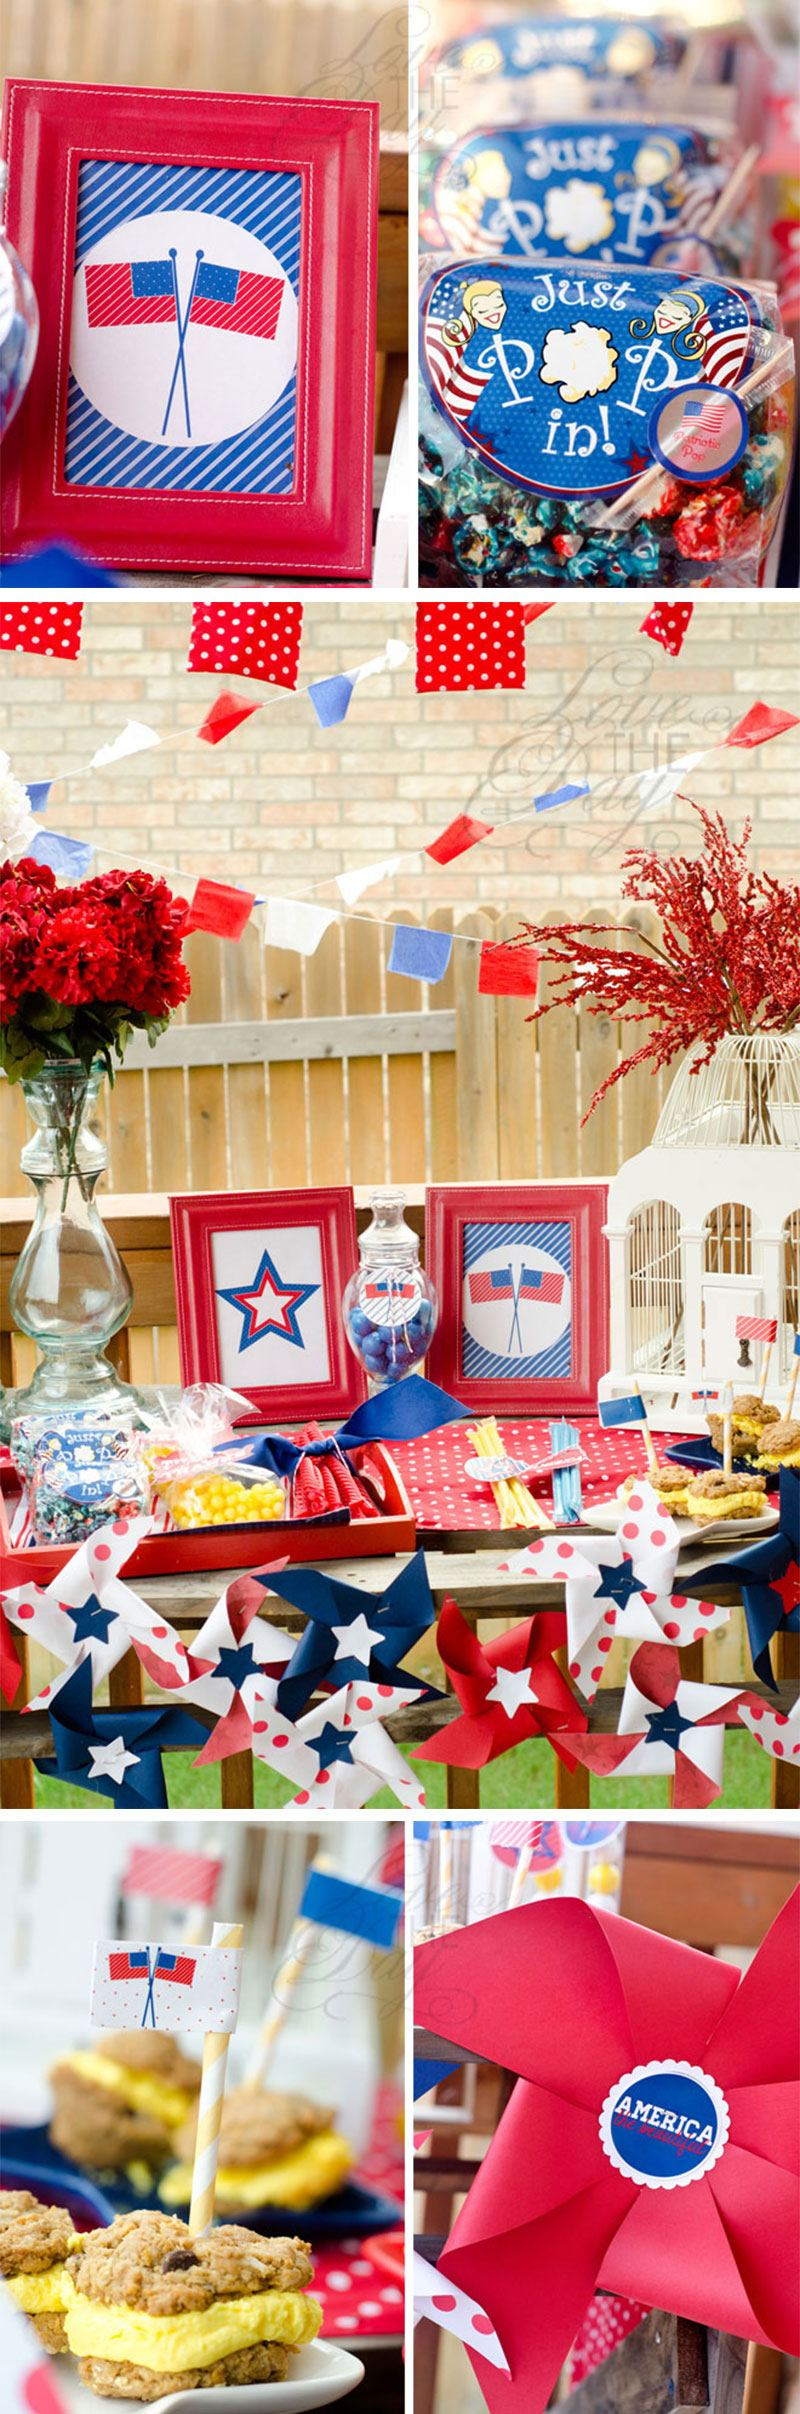 4th of July Party Ideas by Lindi Haws of Love The Day